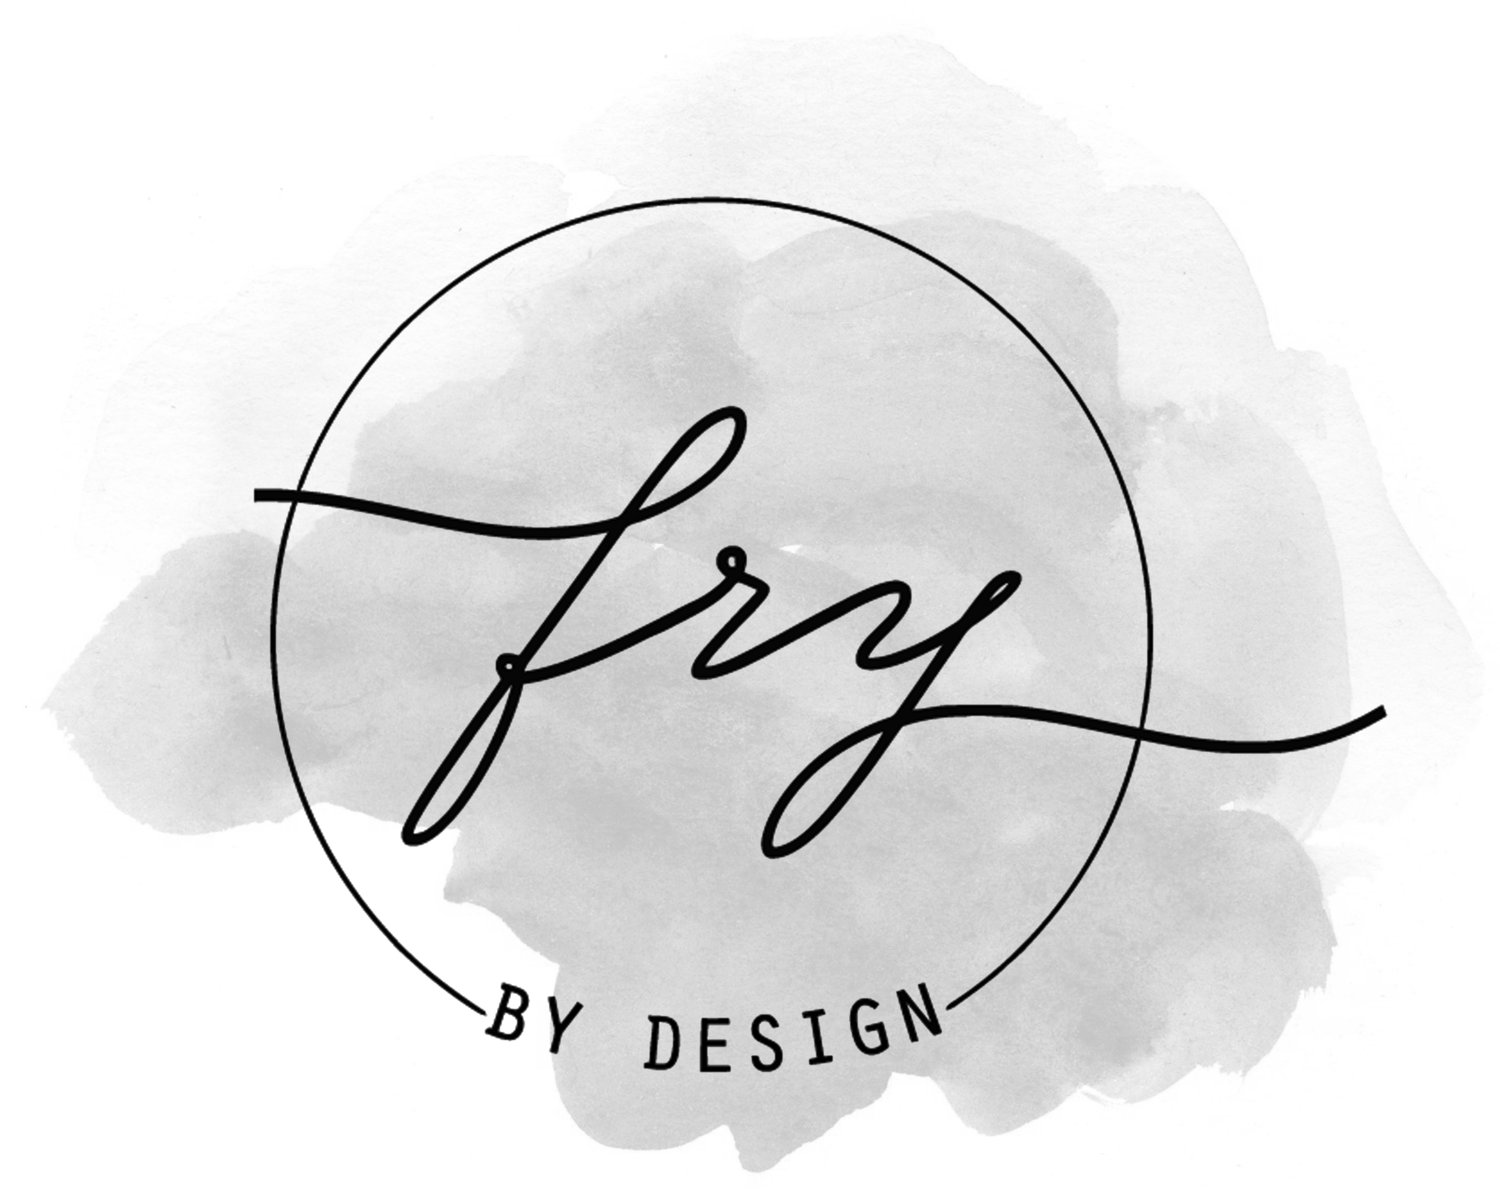 fry by design